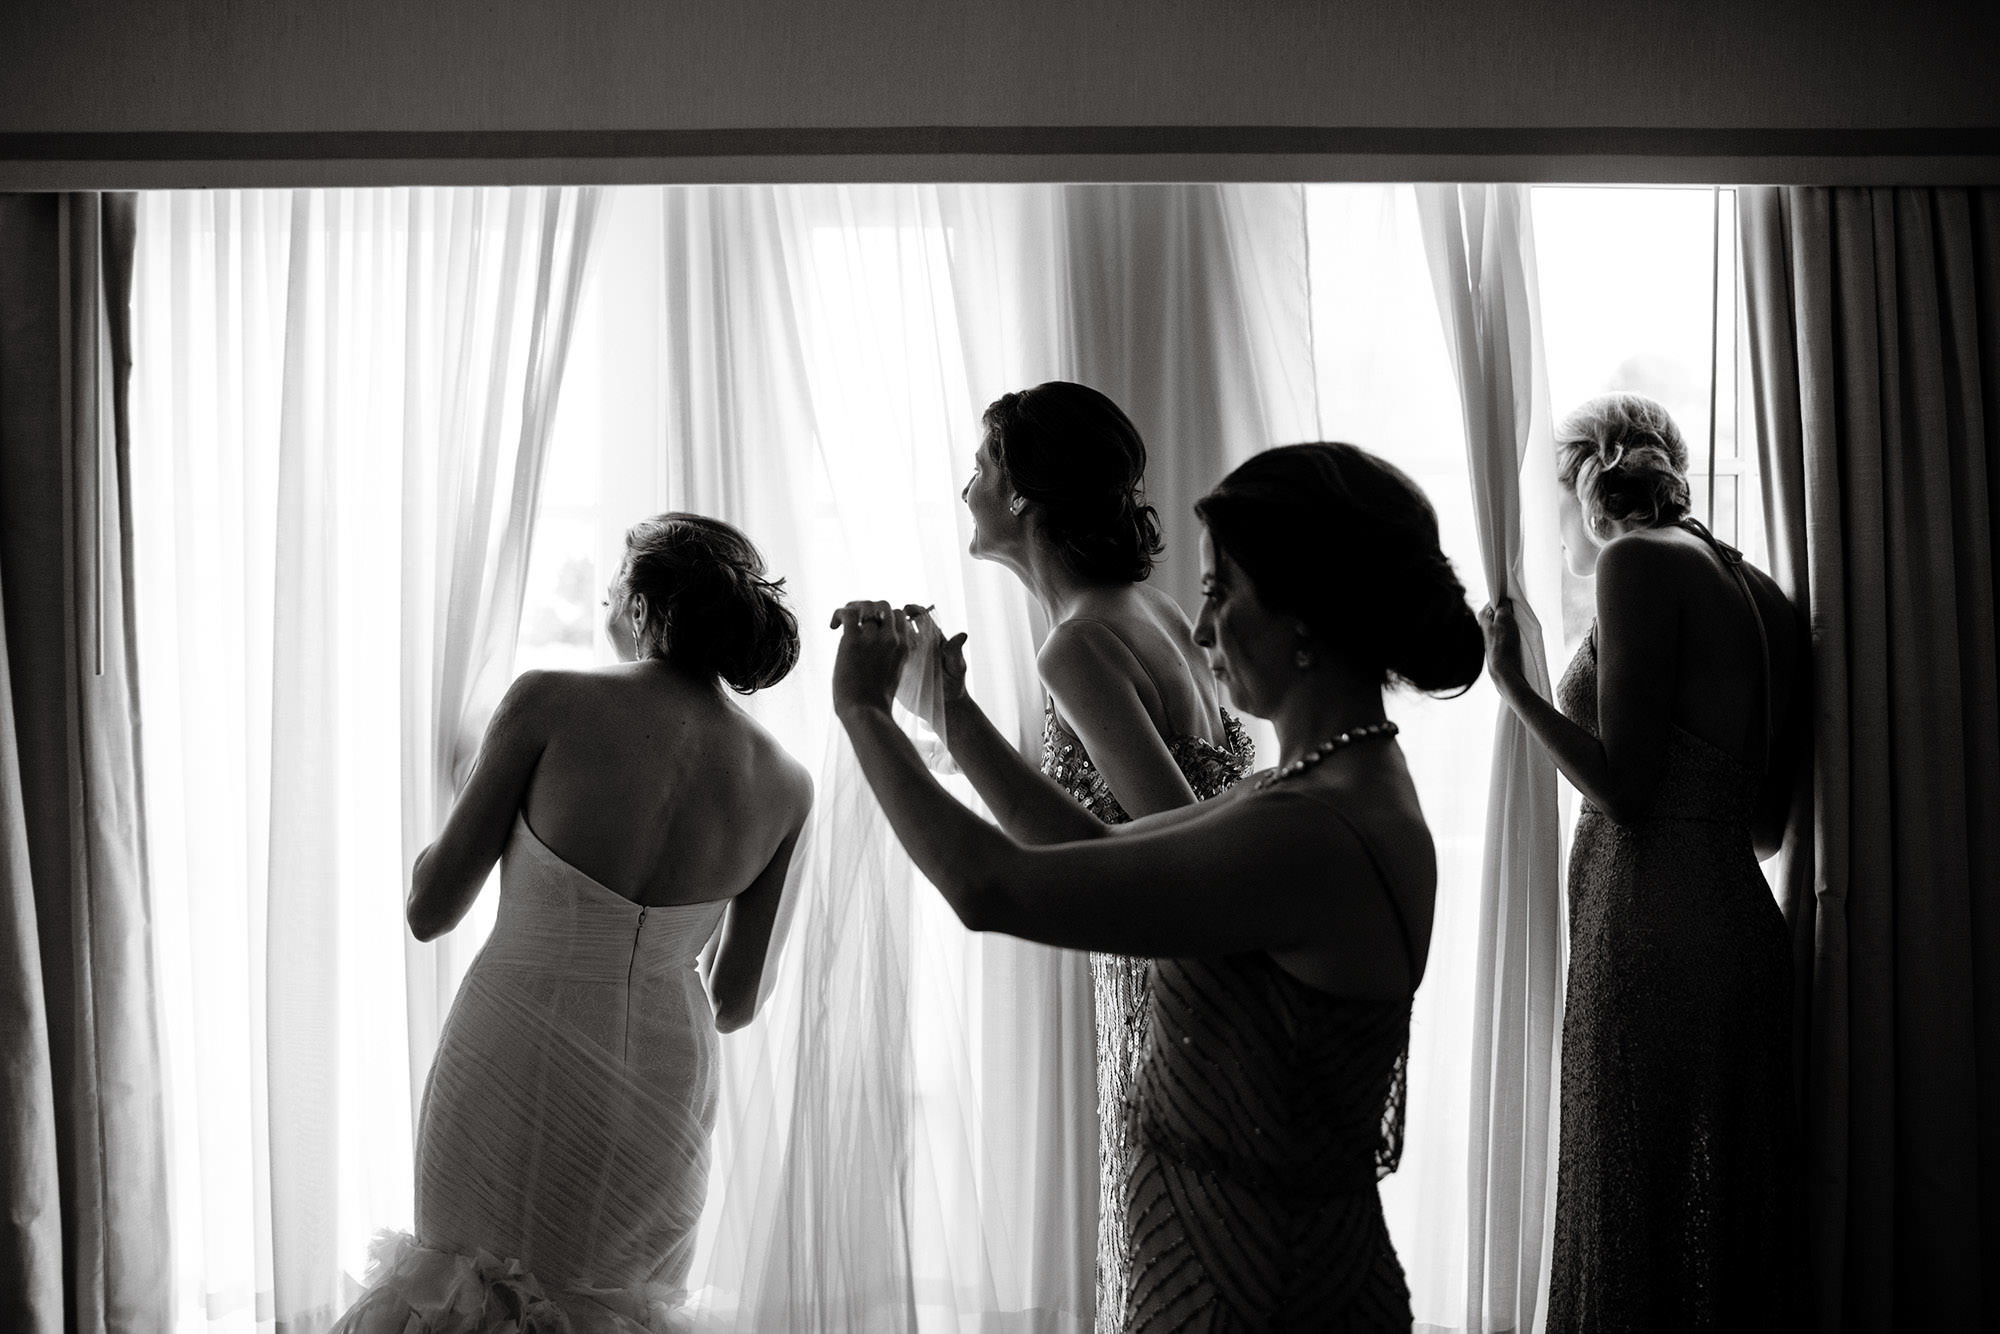 The bridal party watches while guests arrive for the wedding ceremony.